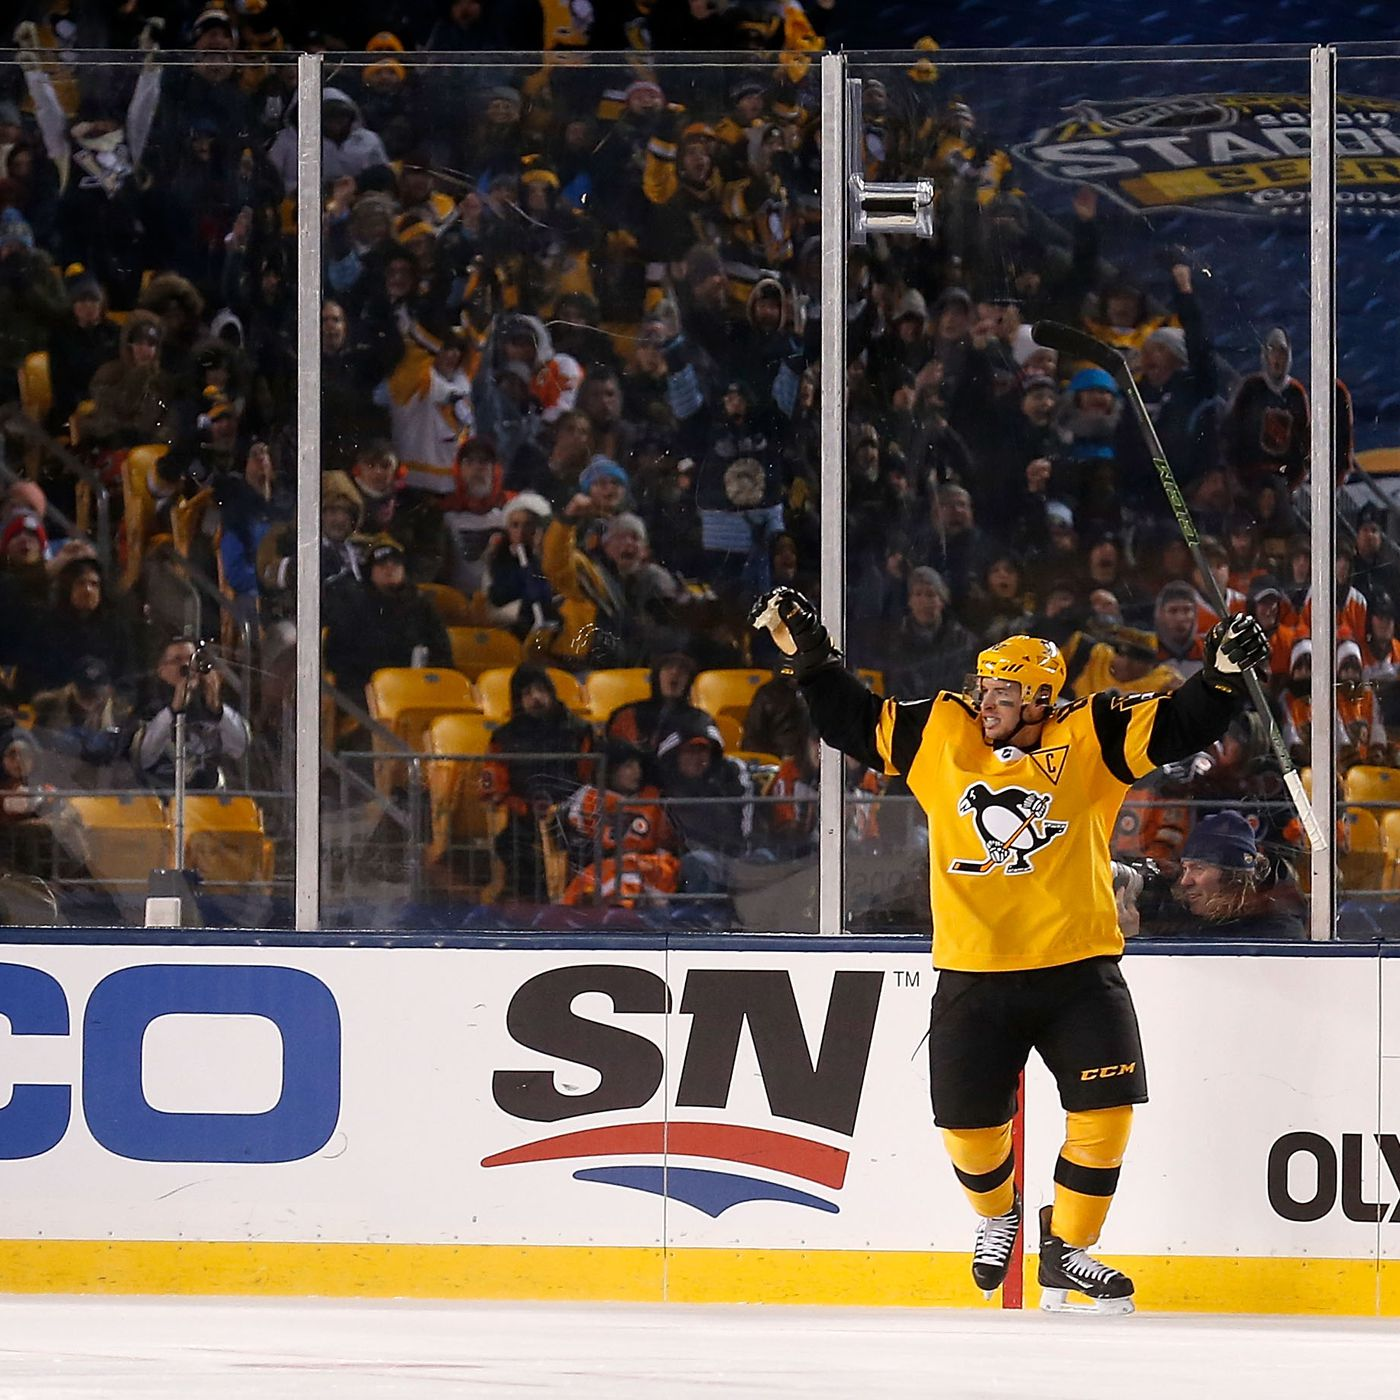 194002e2803 Stadium Series Recap: A Night They'll Never Forget. Pens Defeat Flyers 4-2.